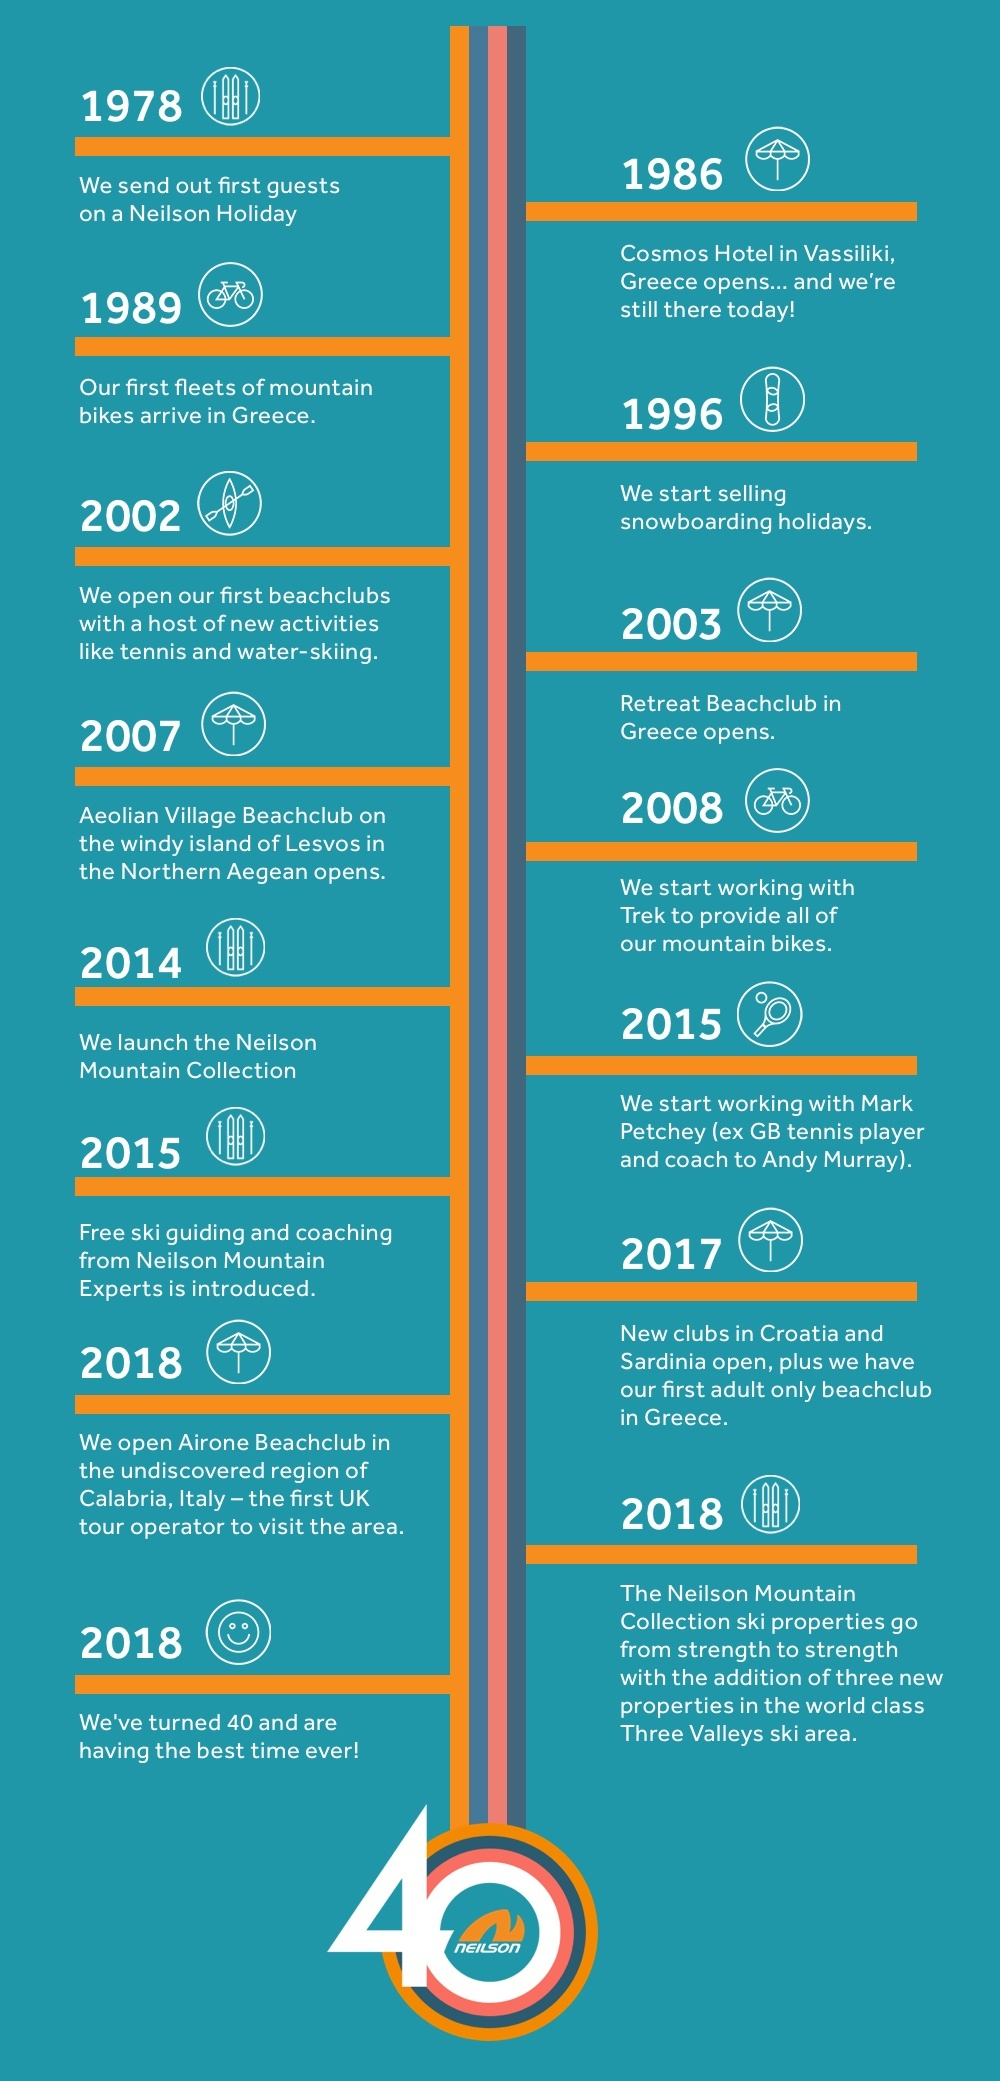 40 Years of Neilson Timeline of Key Moments